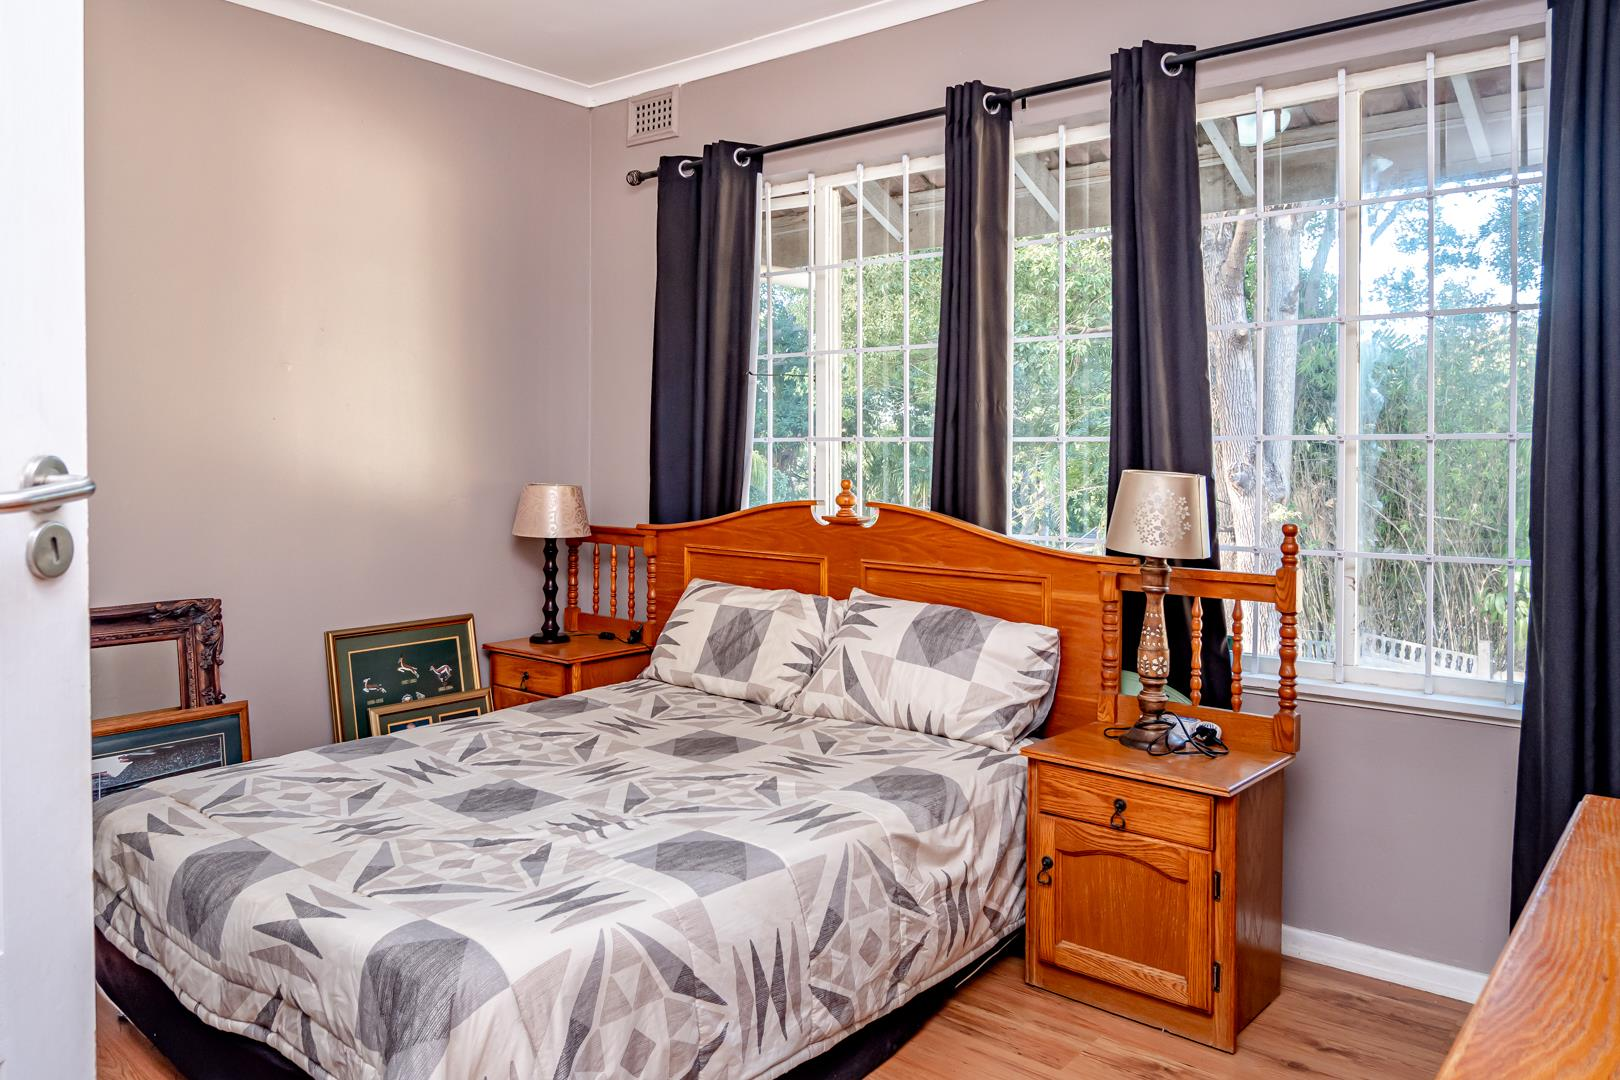 4 Bedroom House For Sale in Dawncliffe